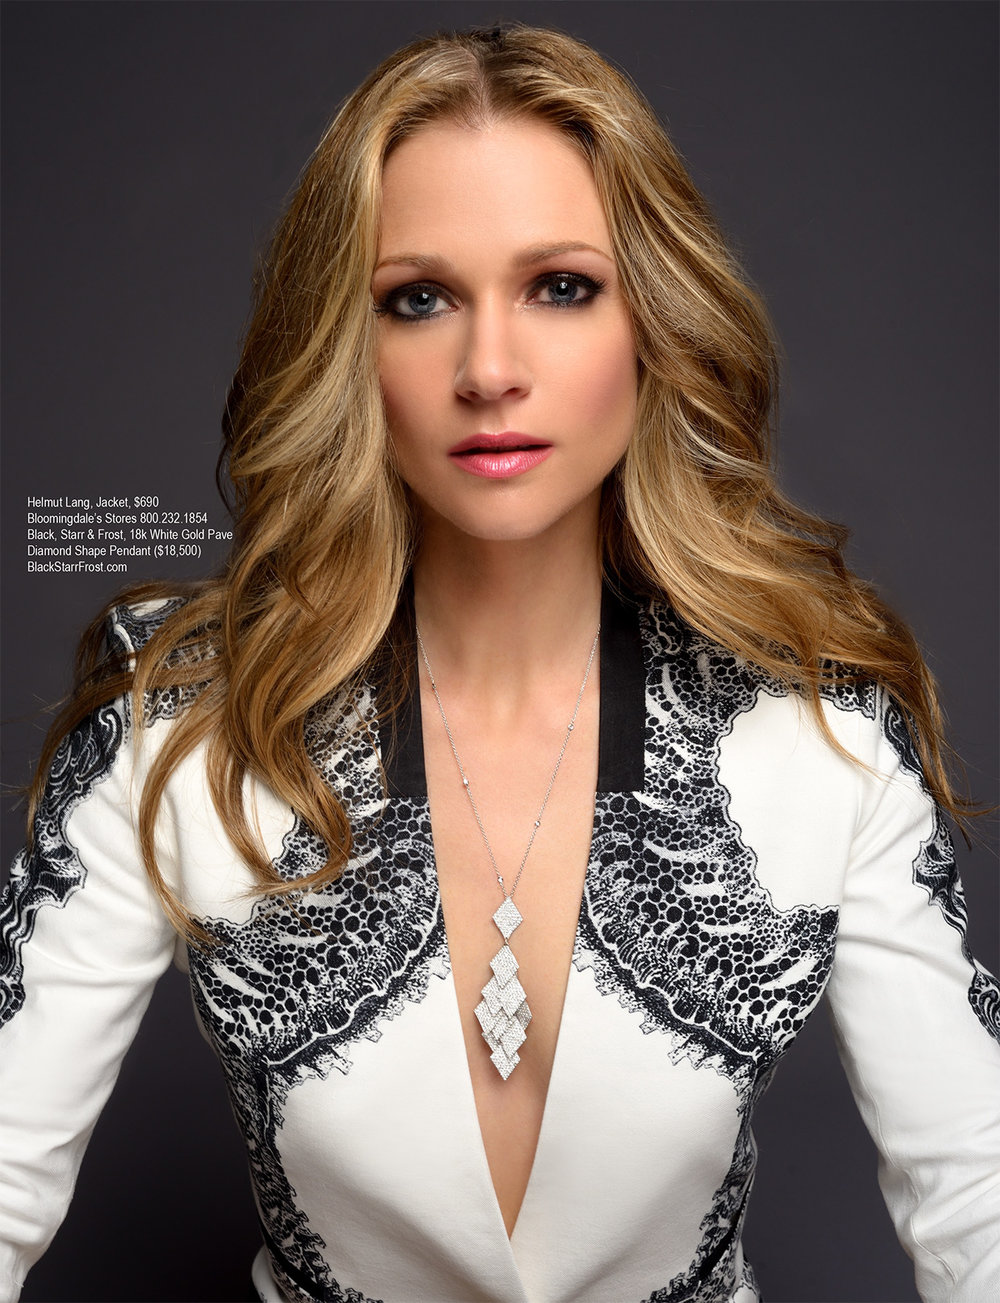 AJ Cook April 2013-22.jpg